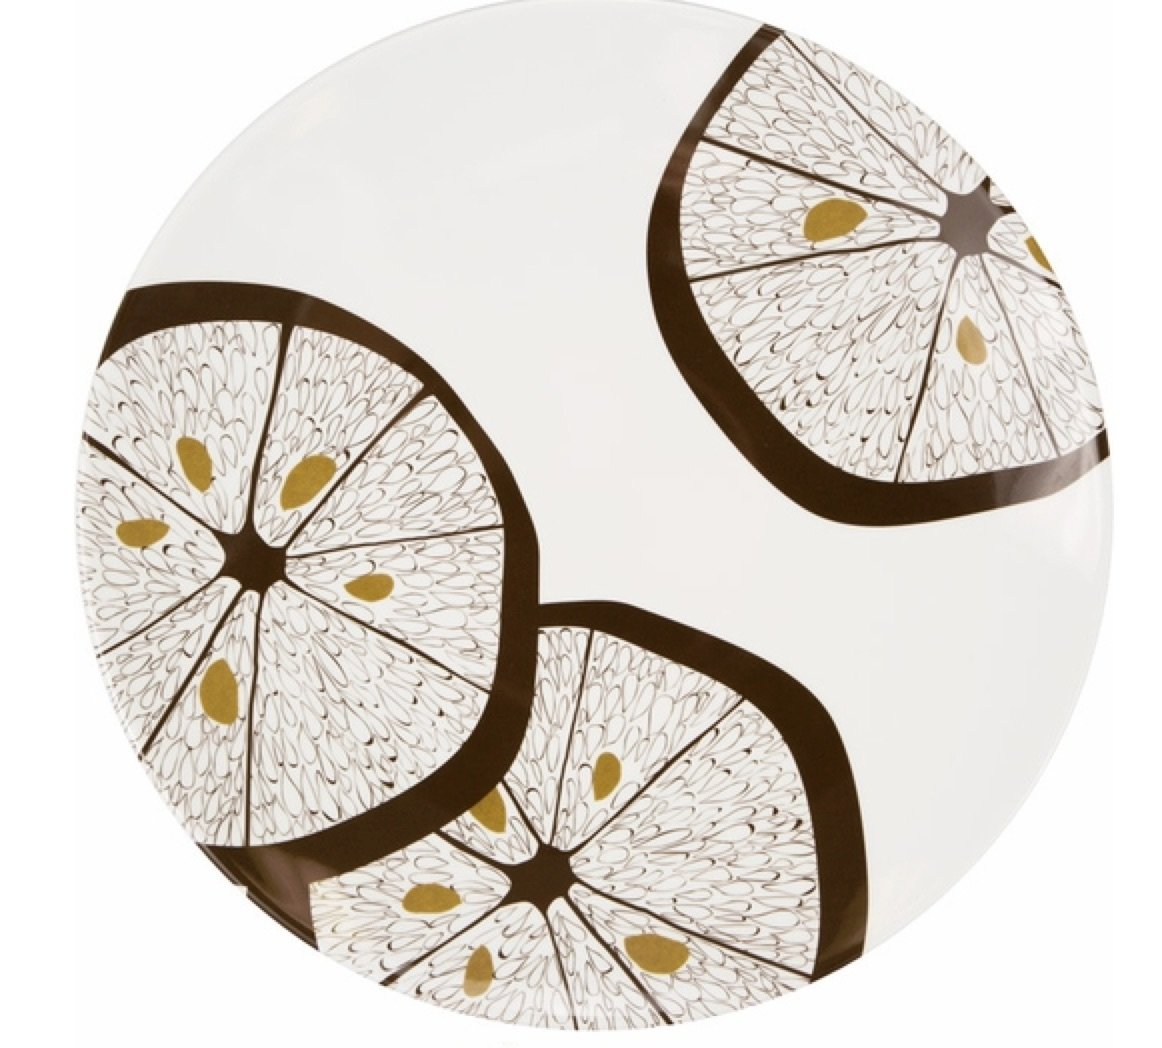 Lemonwood Plate, Elegant Party Supplies, Elegant Party Supplies by Designer Michael Aram